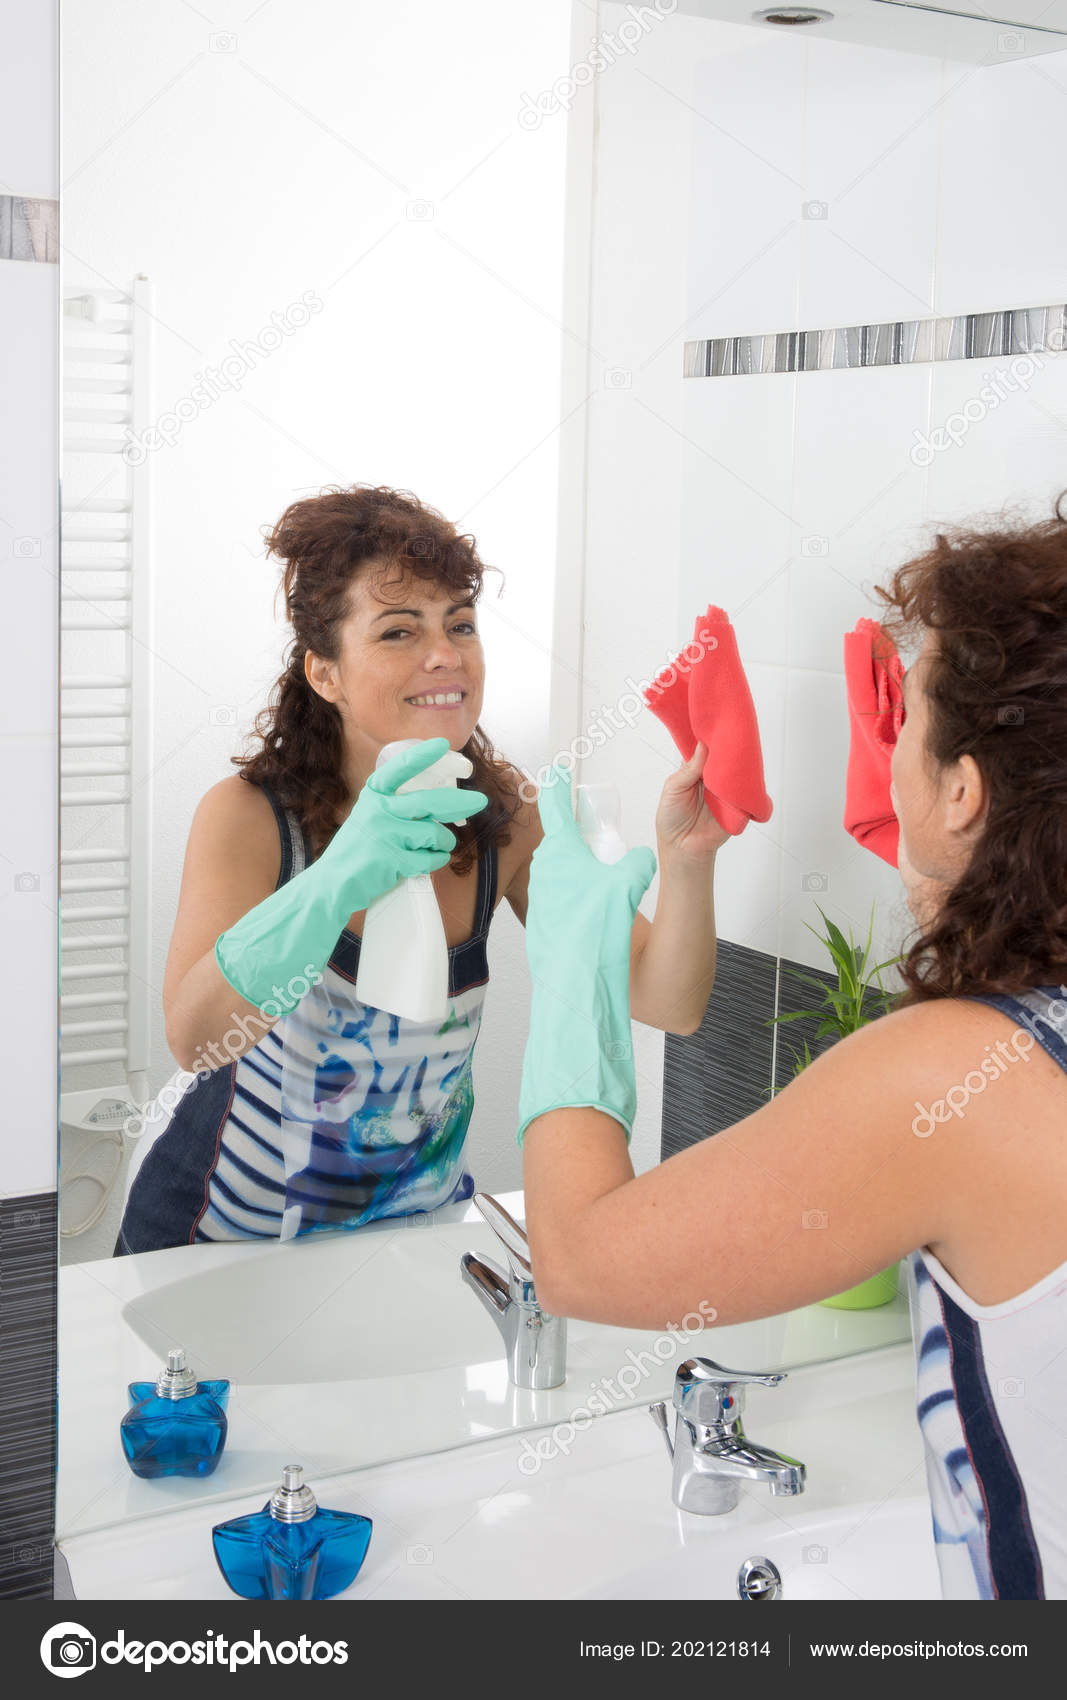 Cleaning Lady Cleans Rubs Mirror Bathroom Stock Photo Sylvrob - Bathroom cleaning lady